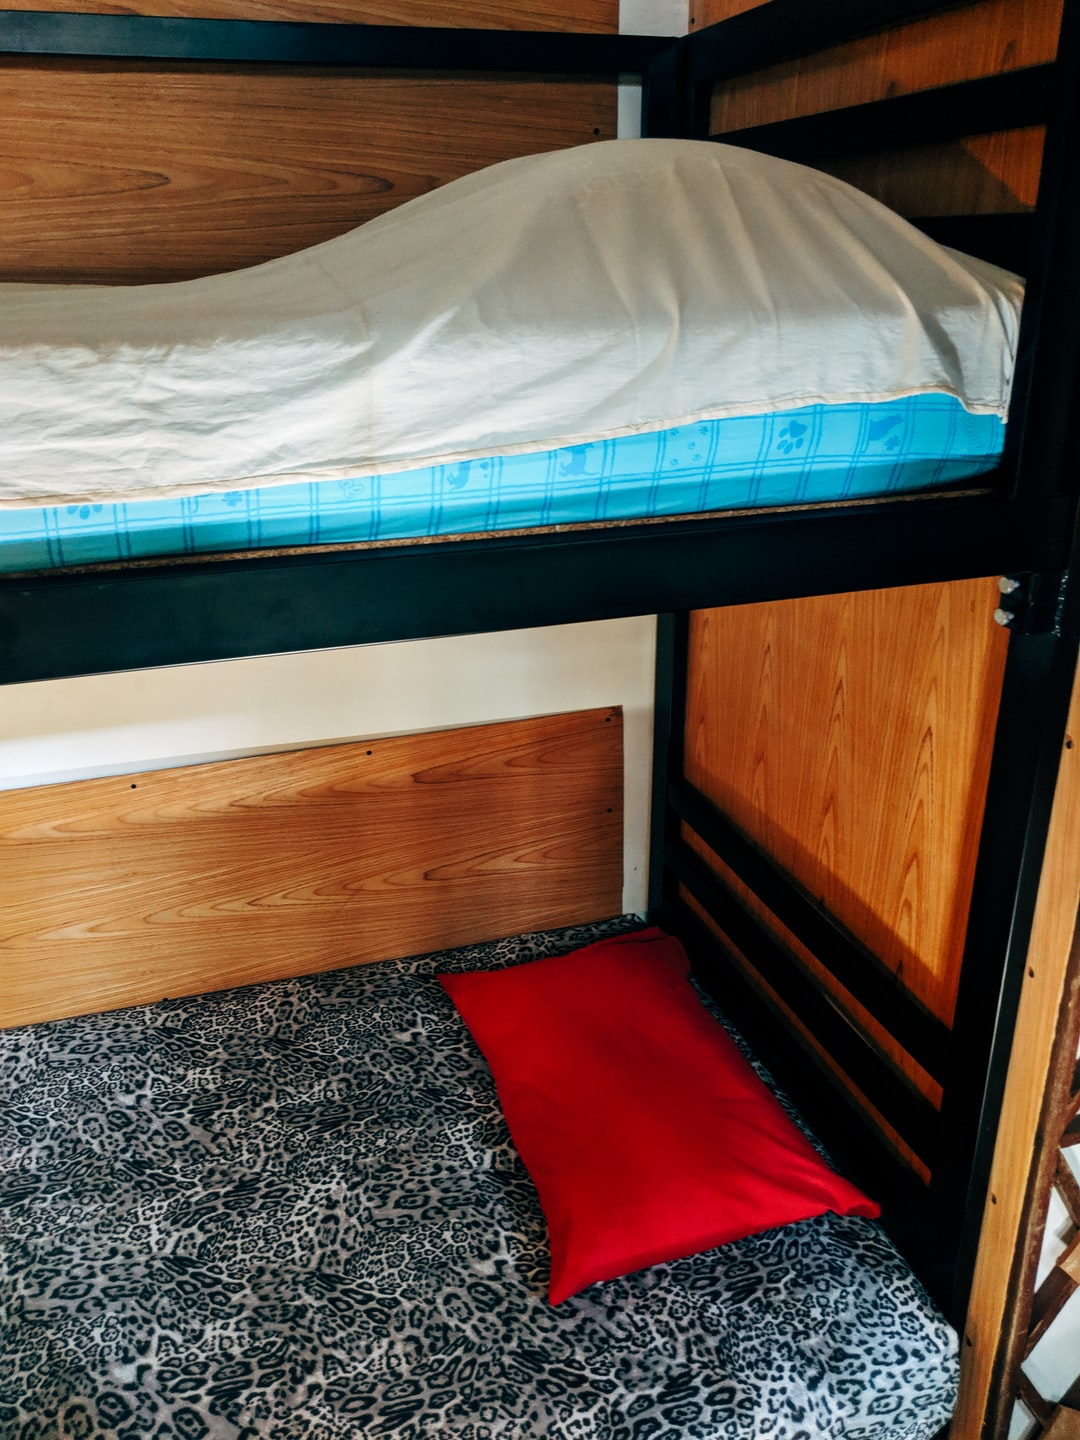 Bunk bed with pillows in a hostel